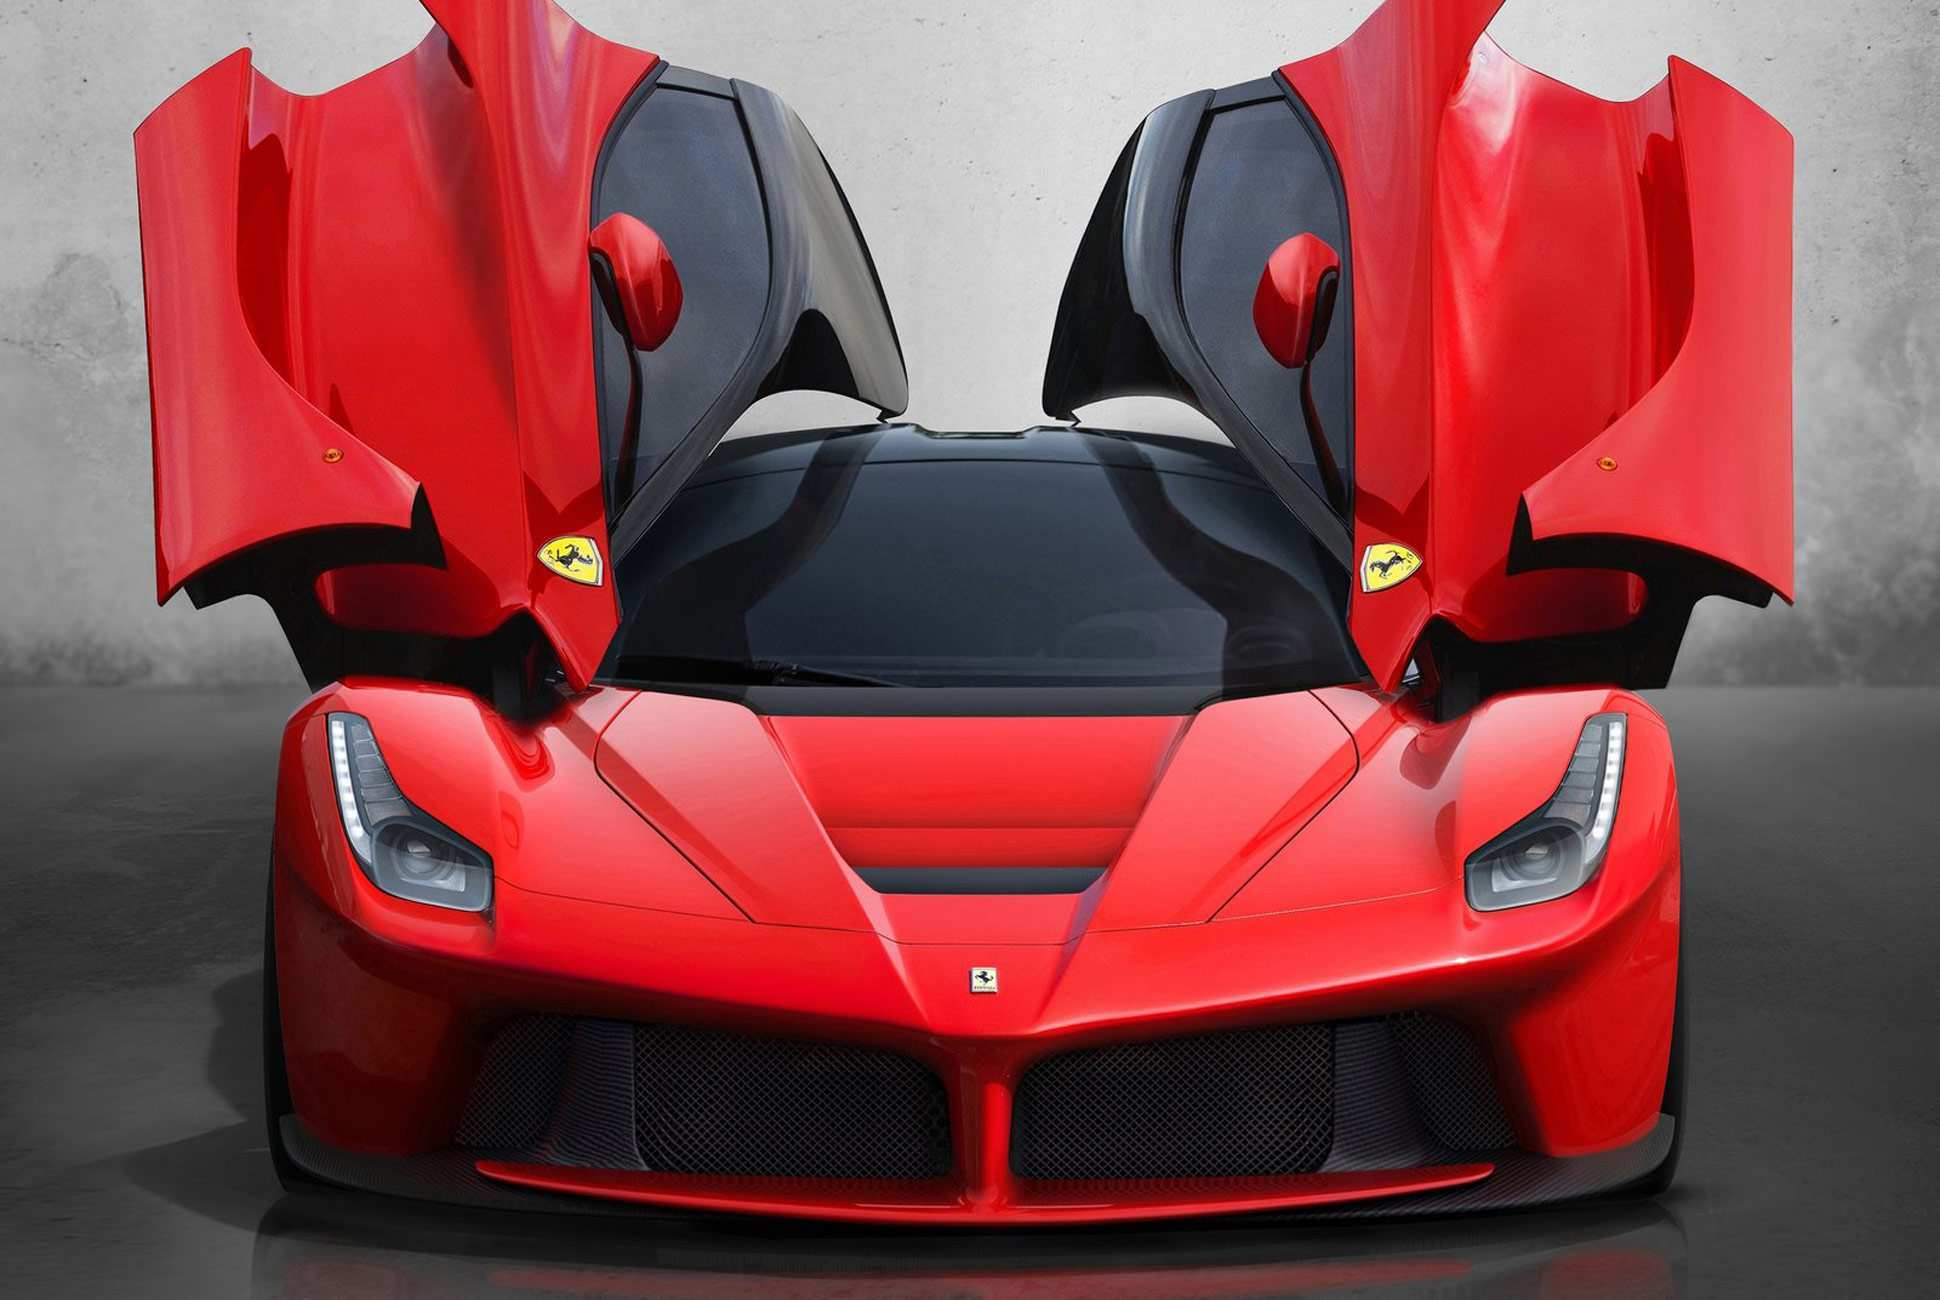 30 All New Ferrari Hybride 2019 Price and Review for Ferrari Hybride 2019